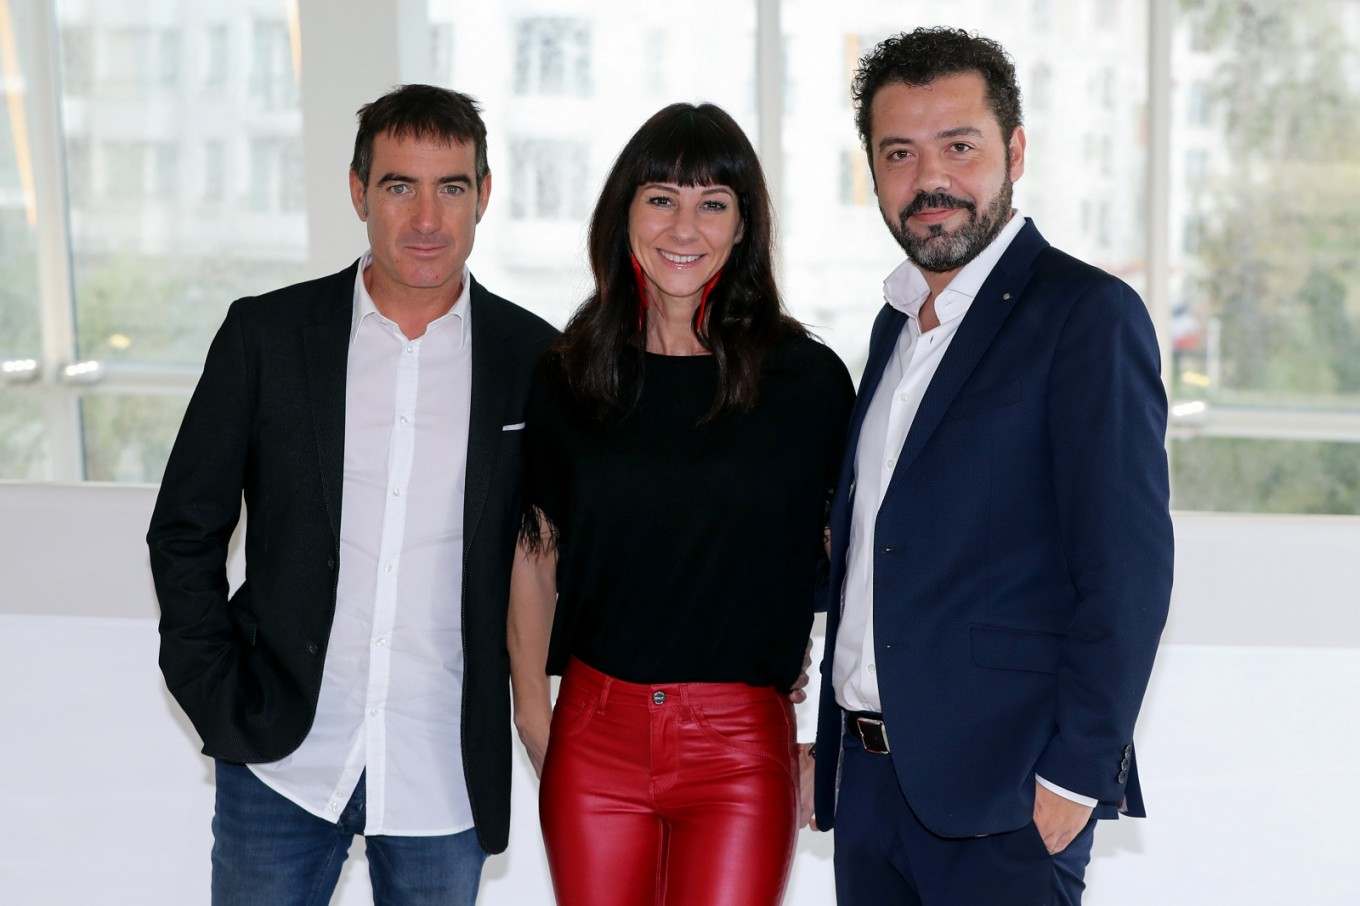 Money Heist' makers give sneak peak of new thriller - Entertainment